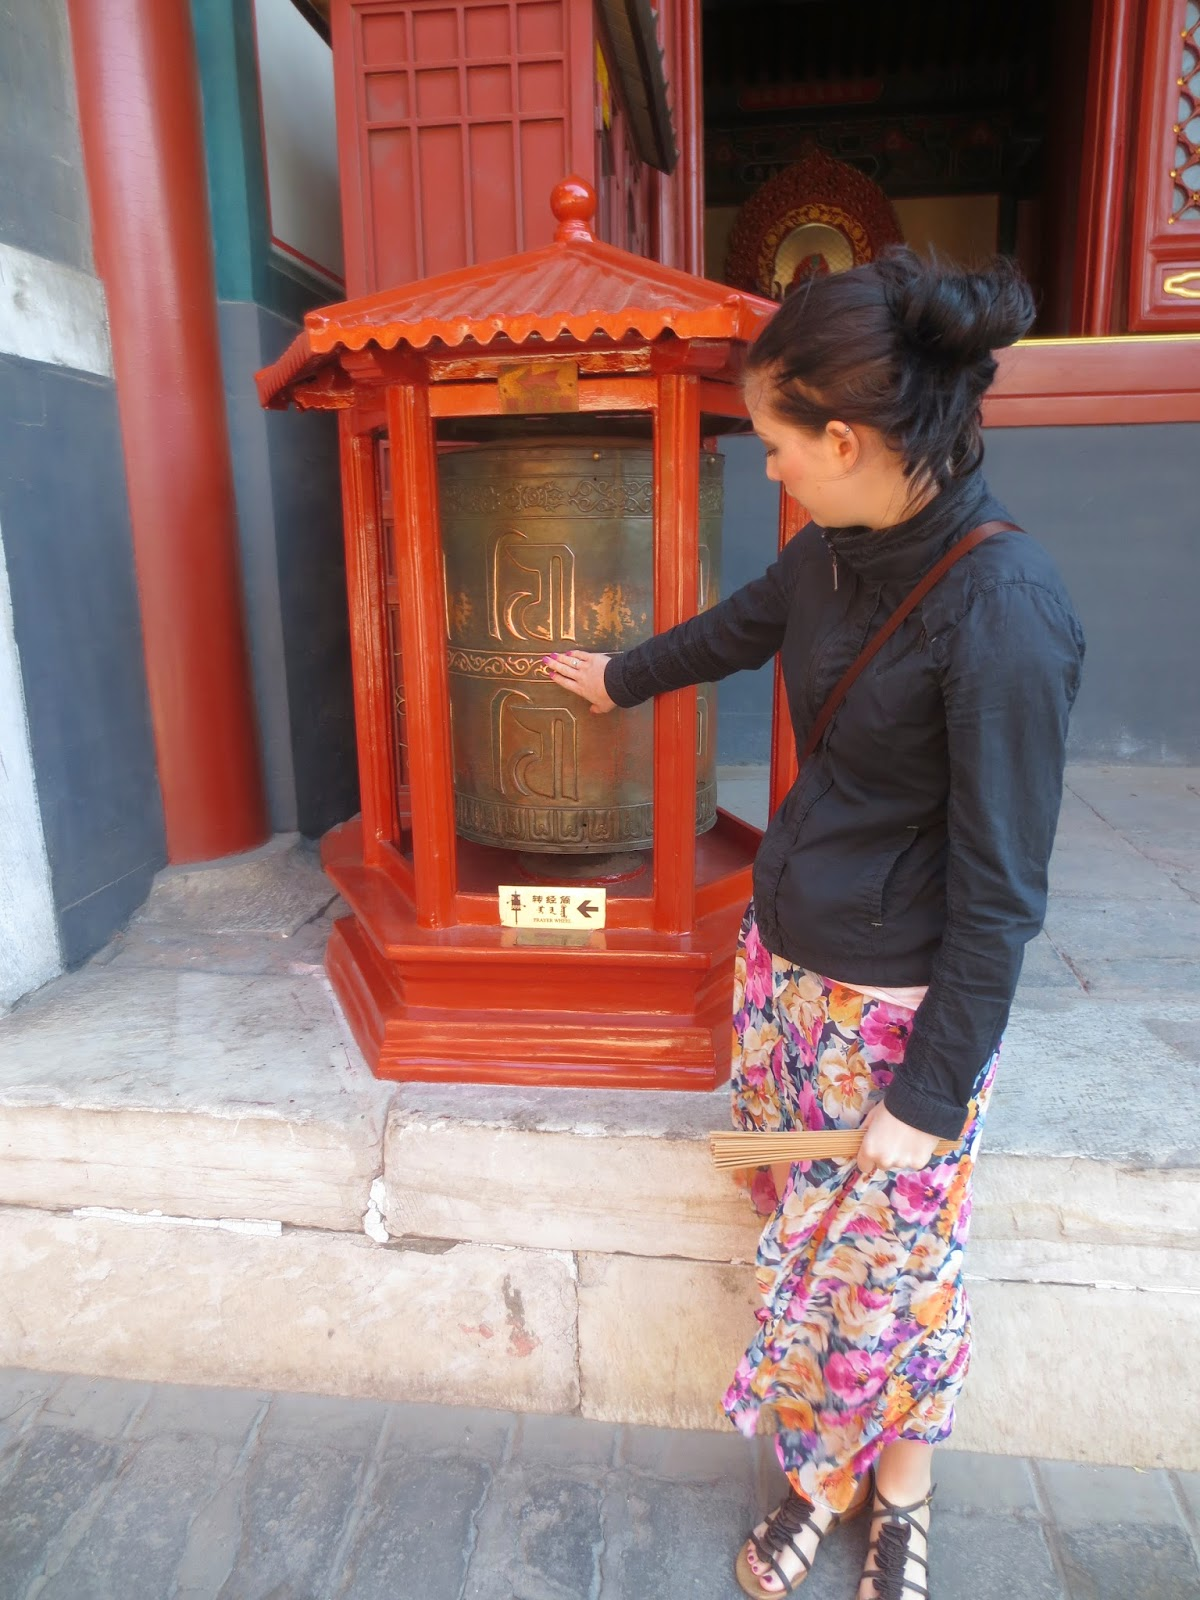 Prayer Wheel at Lama Temple